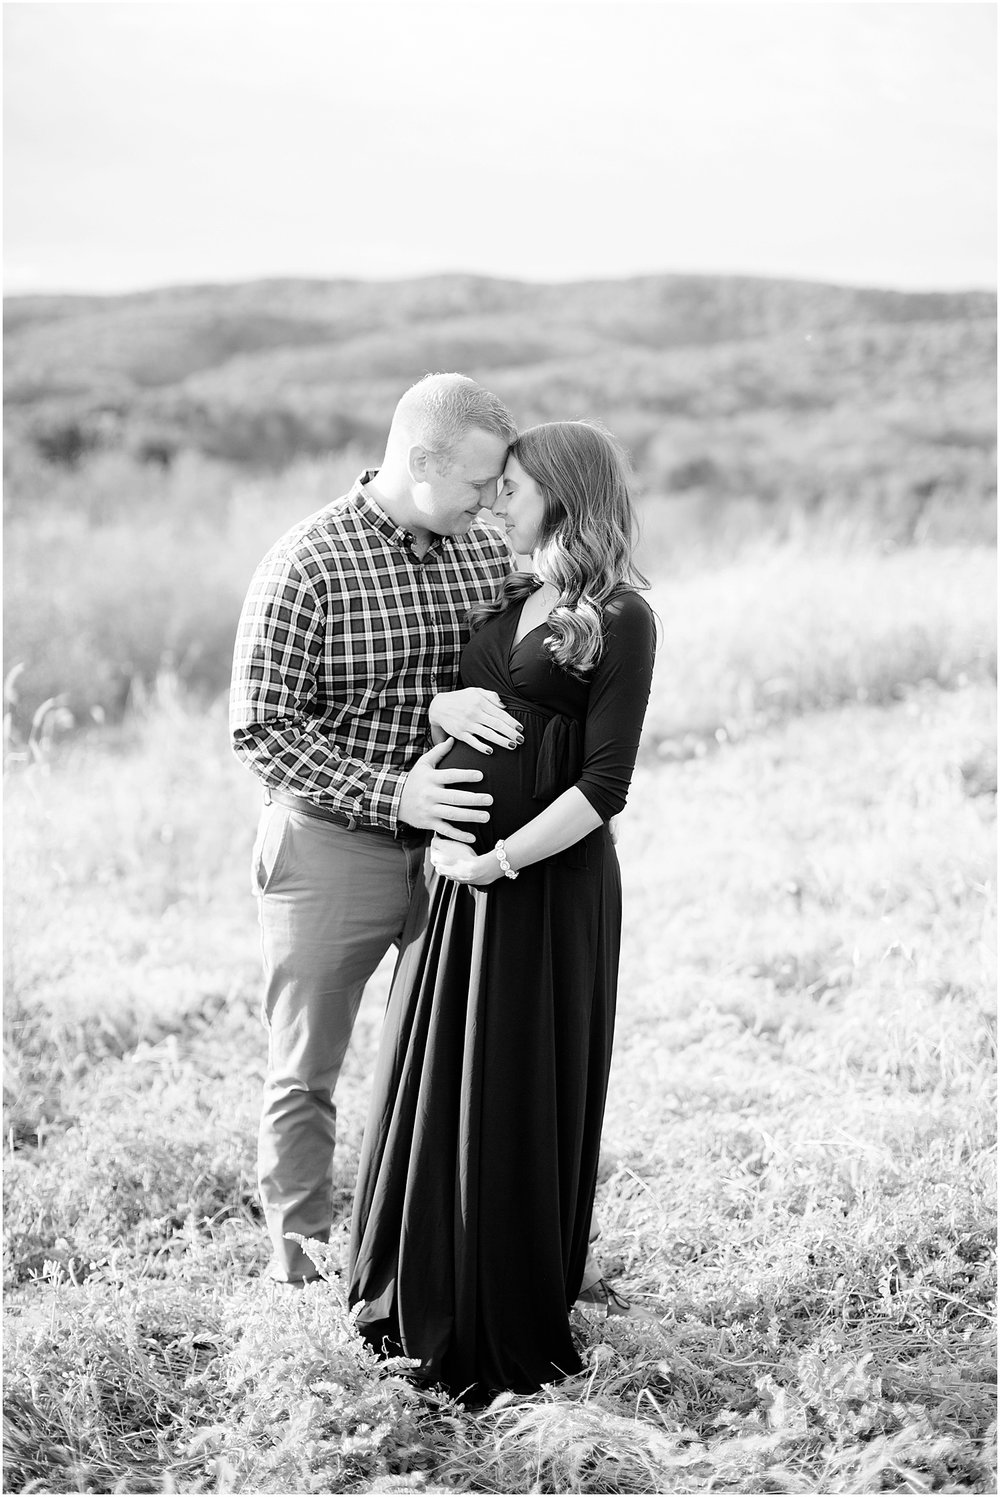 Ashley Powell Photography Hannah Fallion Maternity Blog Images_0015.jpg